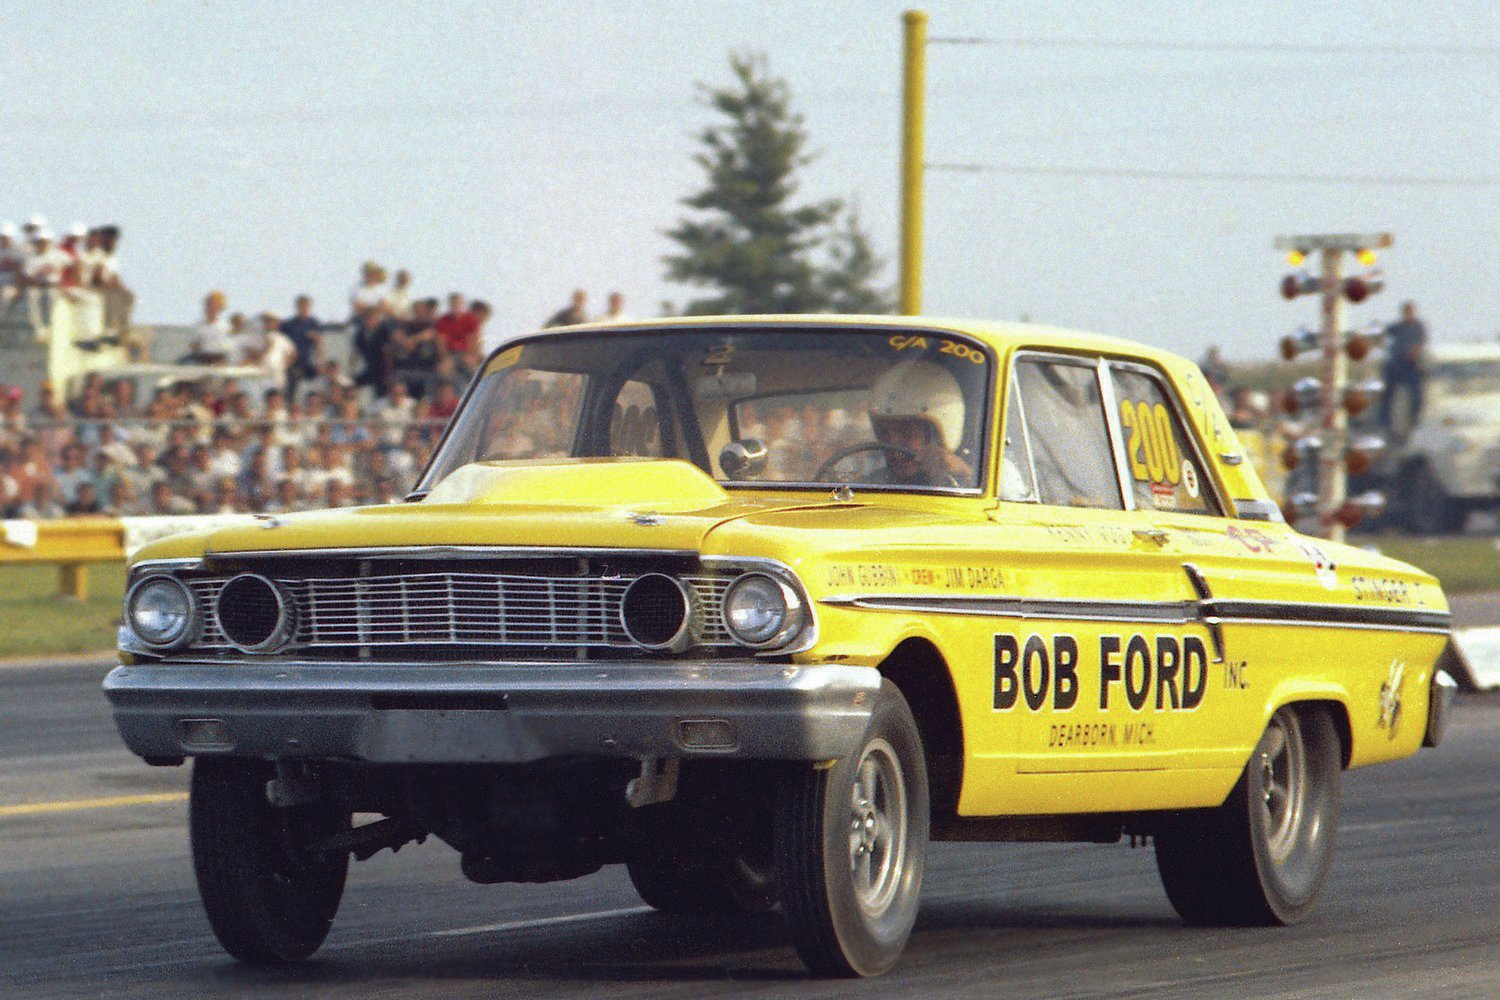 """What if we took the Fairlane body and put the 427 eight-barrel engine in it? Would that work? In 1964, Ford created the Fairlane Thunderbolt specifically for drag racing dominance, 3 inches shorter and 700 pounds lighter than the Galaxie, and handed out about 100 of them over the next two years to some of its best racers. The cars were all built off-site at Dearborn Steel & Tube, aka DST or """"The Tube"""" in Ford-speak. This car, raced by driver Kenny Vogt for local Dearborn dealer Bob Ford, is shown at the NHRA Indy Nationals in 1964 in C/Altered, because NHRA still hadn't figured out where the factory supercars belonged."""